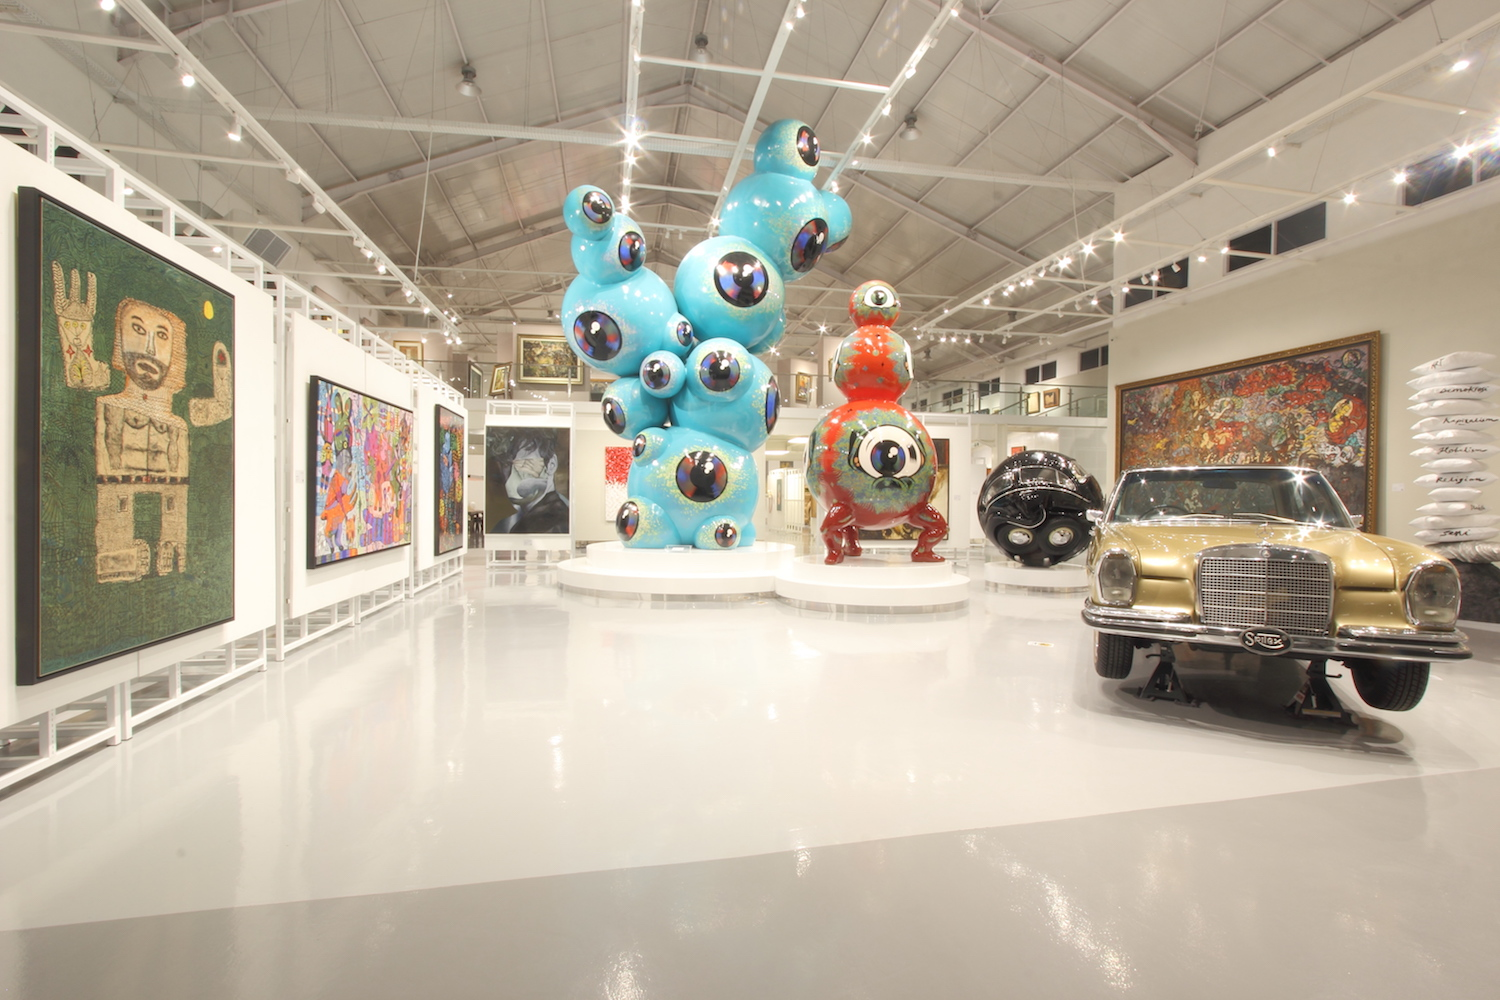 Wedhar Riyadi, Changing Perspective, 2017 in the middle. Surrounded by works by (left to right) Yunizar, Eddie Hara, Eko Nugroho, Wedhar Riyadi, Ichwan Noor, I Made Djirna, and Tisna Sanjaya, as well as a 1972 Mercedes Benz.